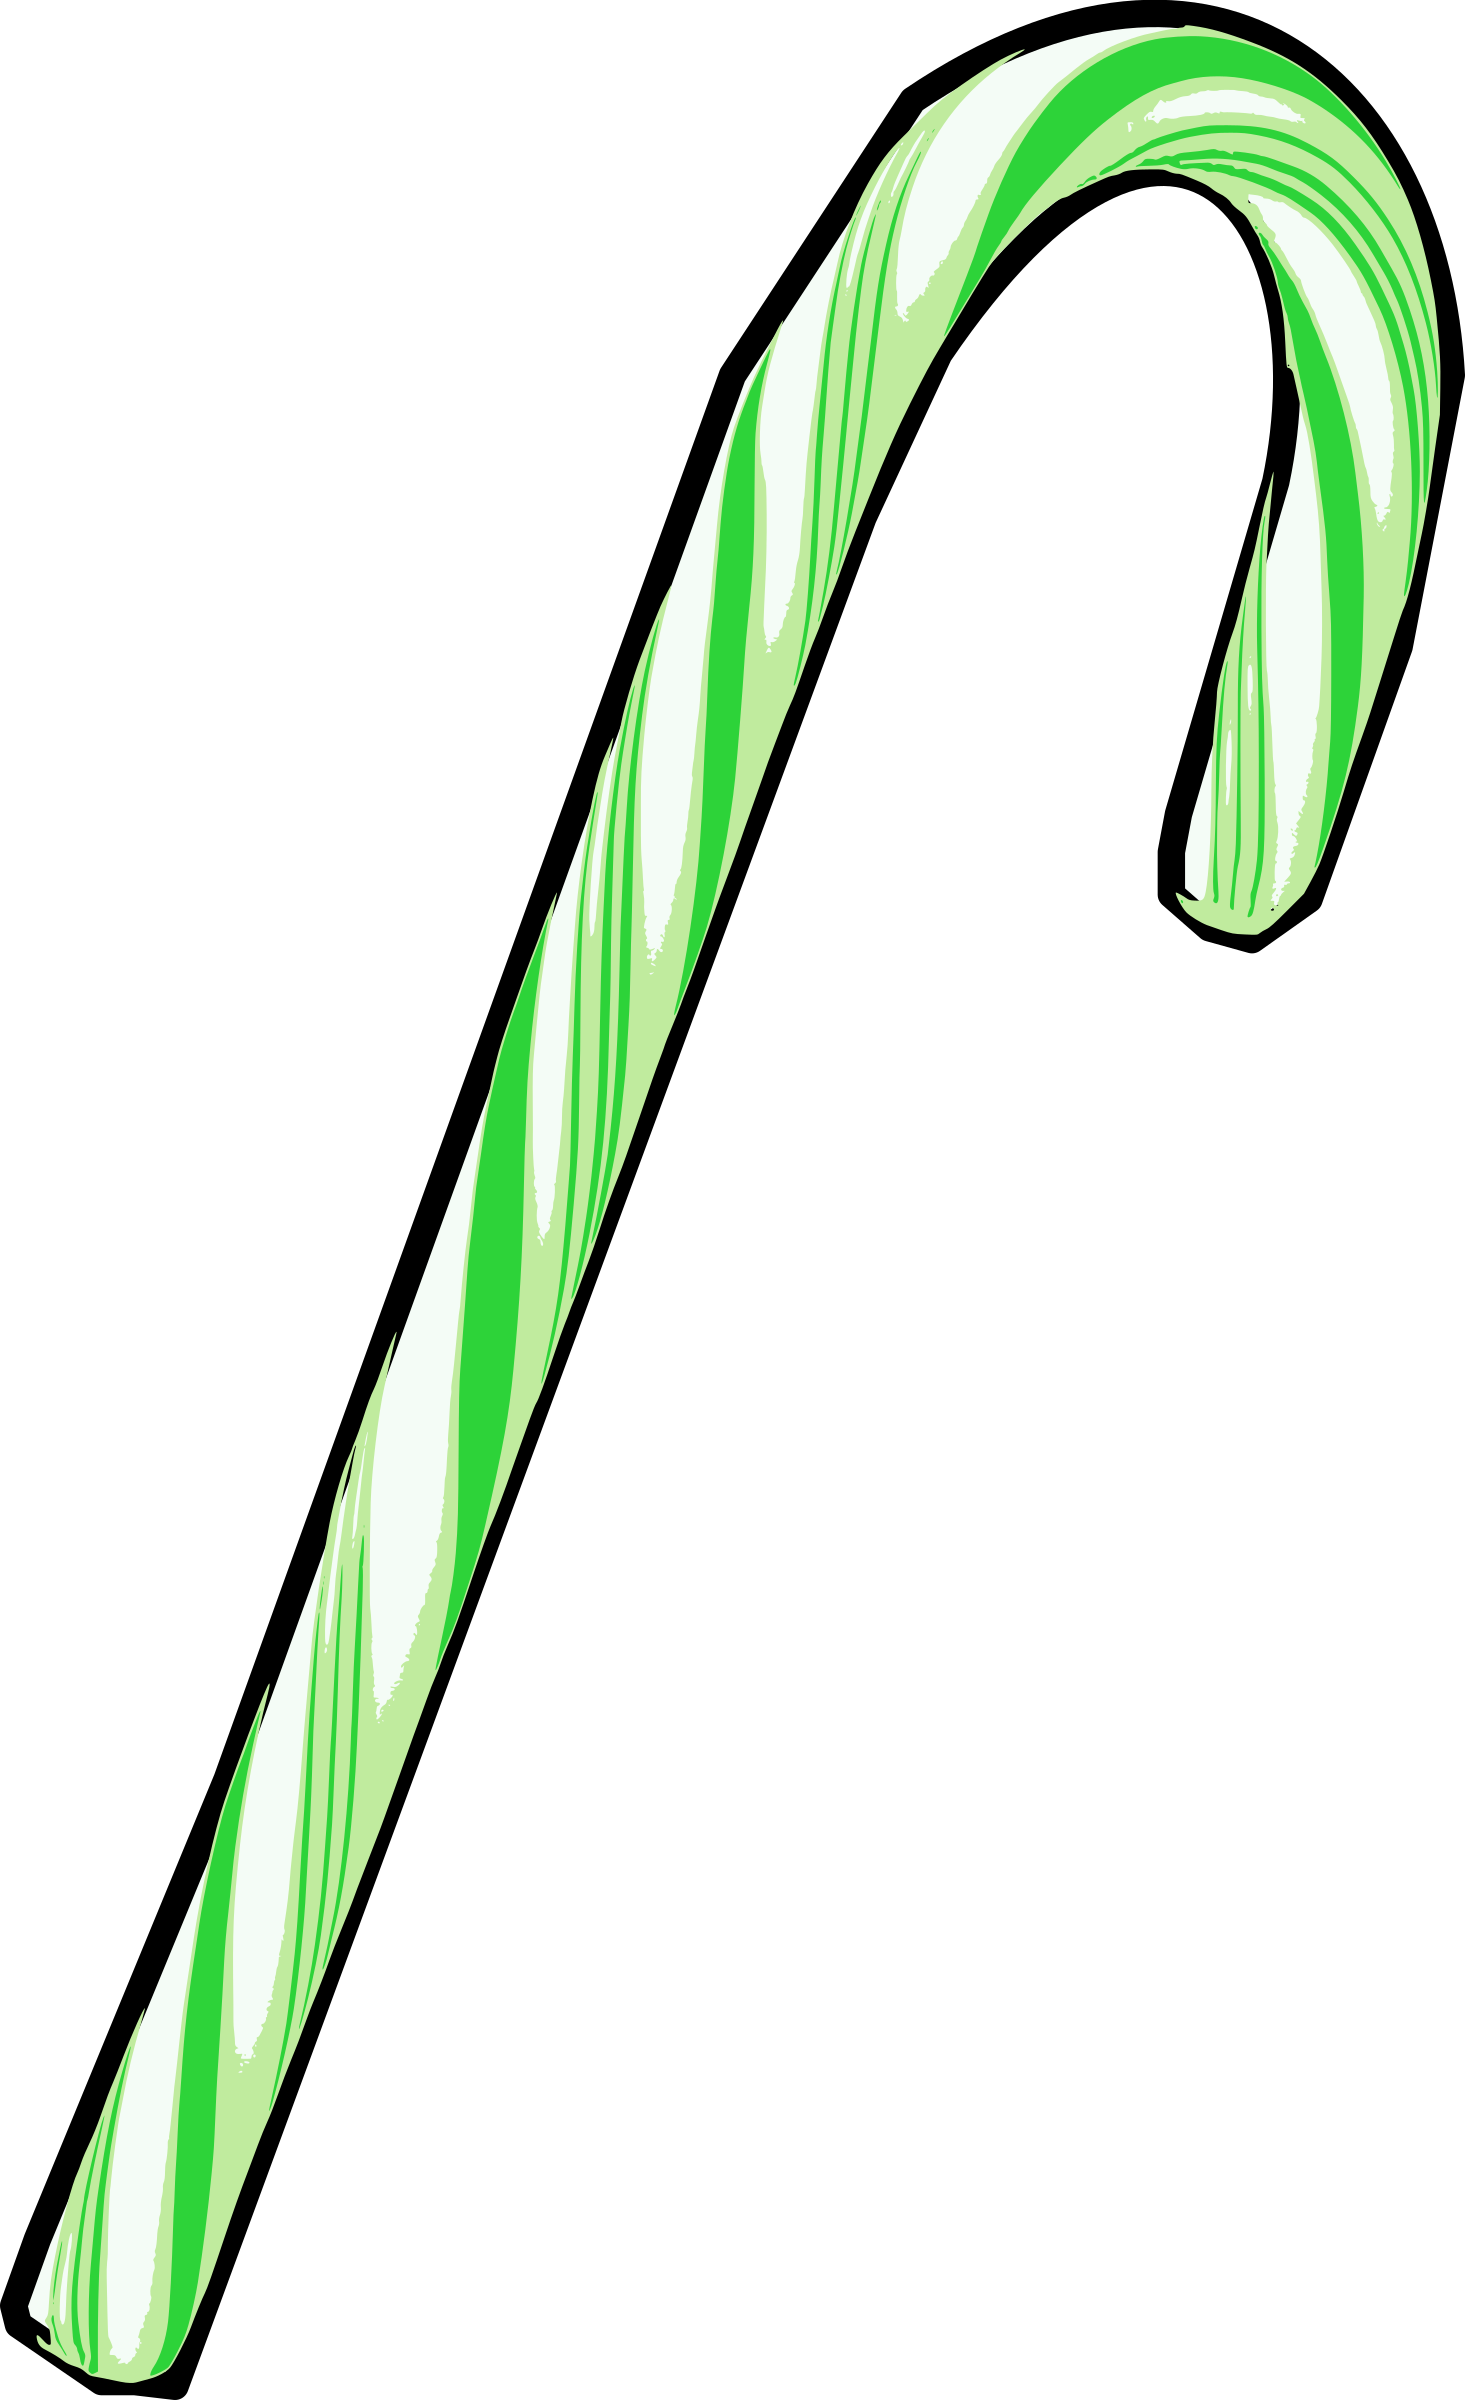 Green Candy Cane by j4p4n